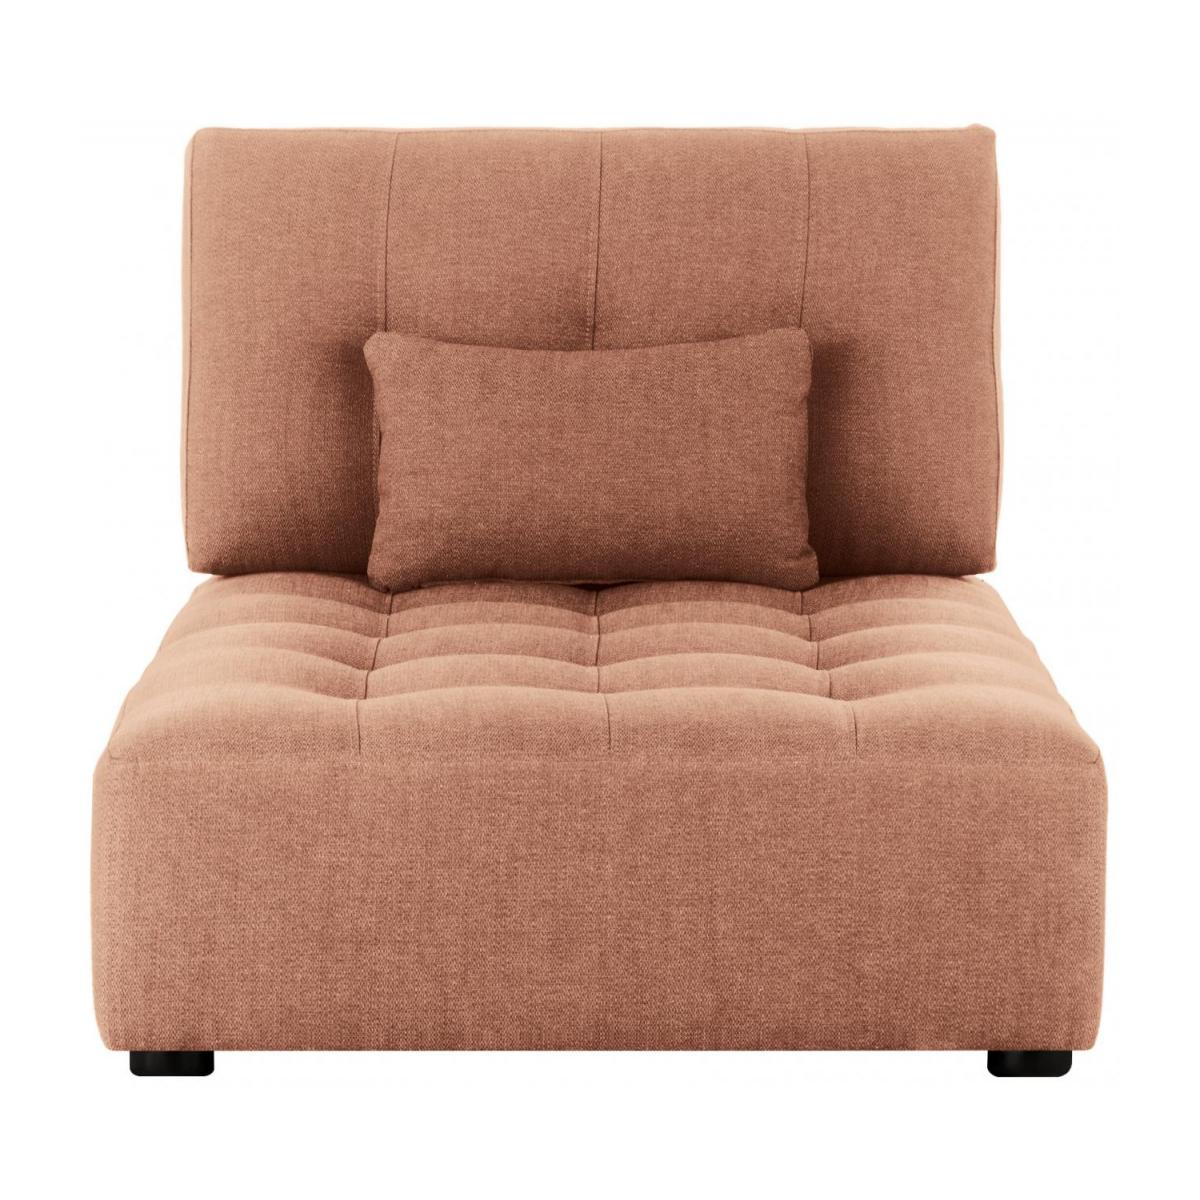 Chaiselongue-Tela-rosa n°2